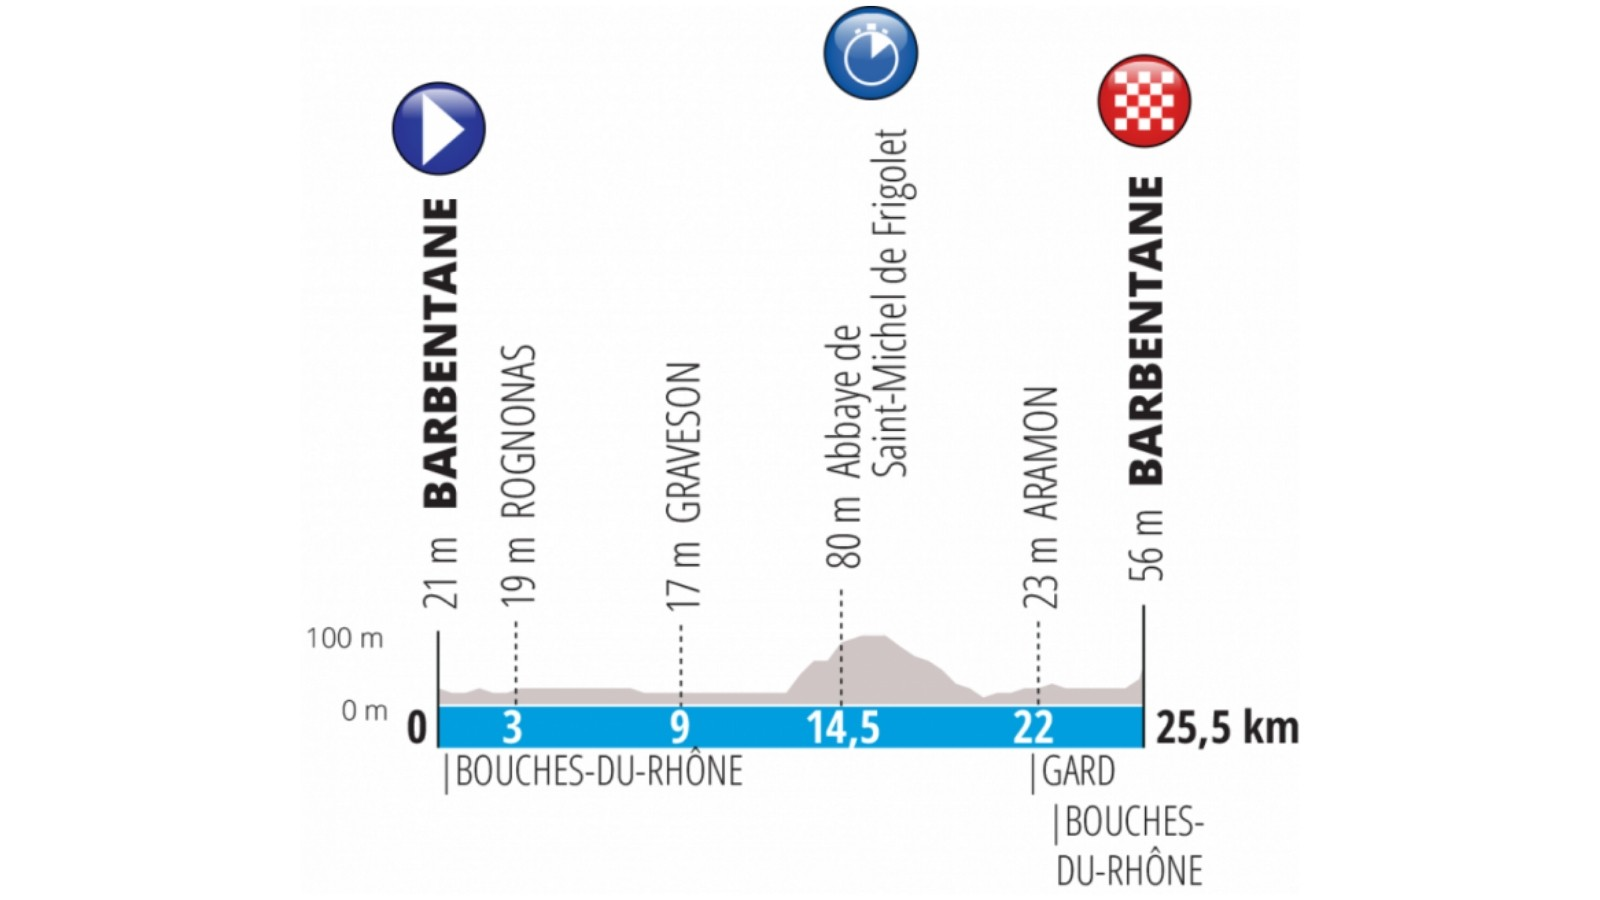 Stage 5 is a major test for the General Classification riders